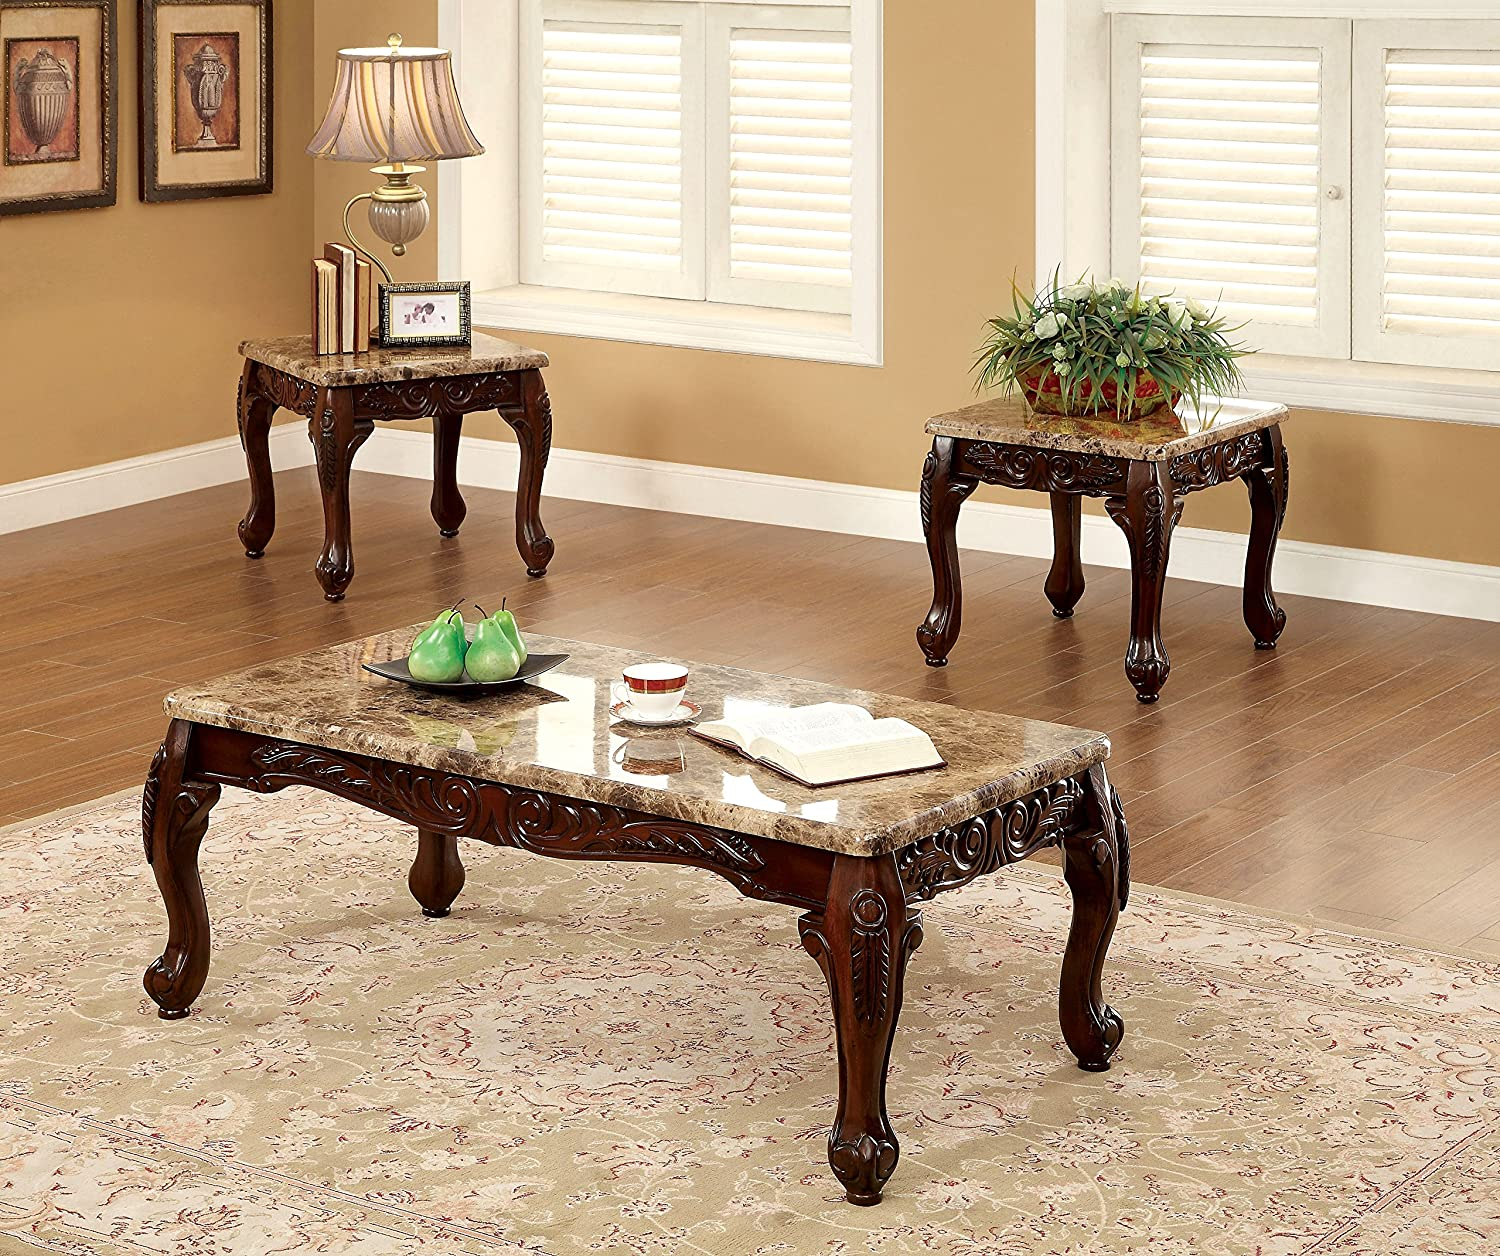 Merveilleux Amazon.com: Furniture Of America Beltran 3 Piece Traditional Faux Marble  Top Accent Tables Set, Dark Oak: Kitchen U0026 Dining